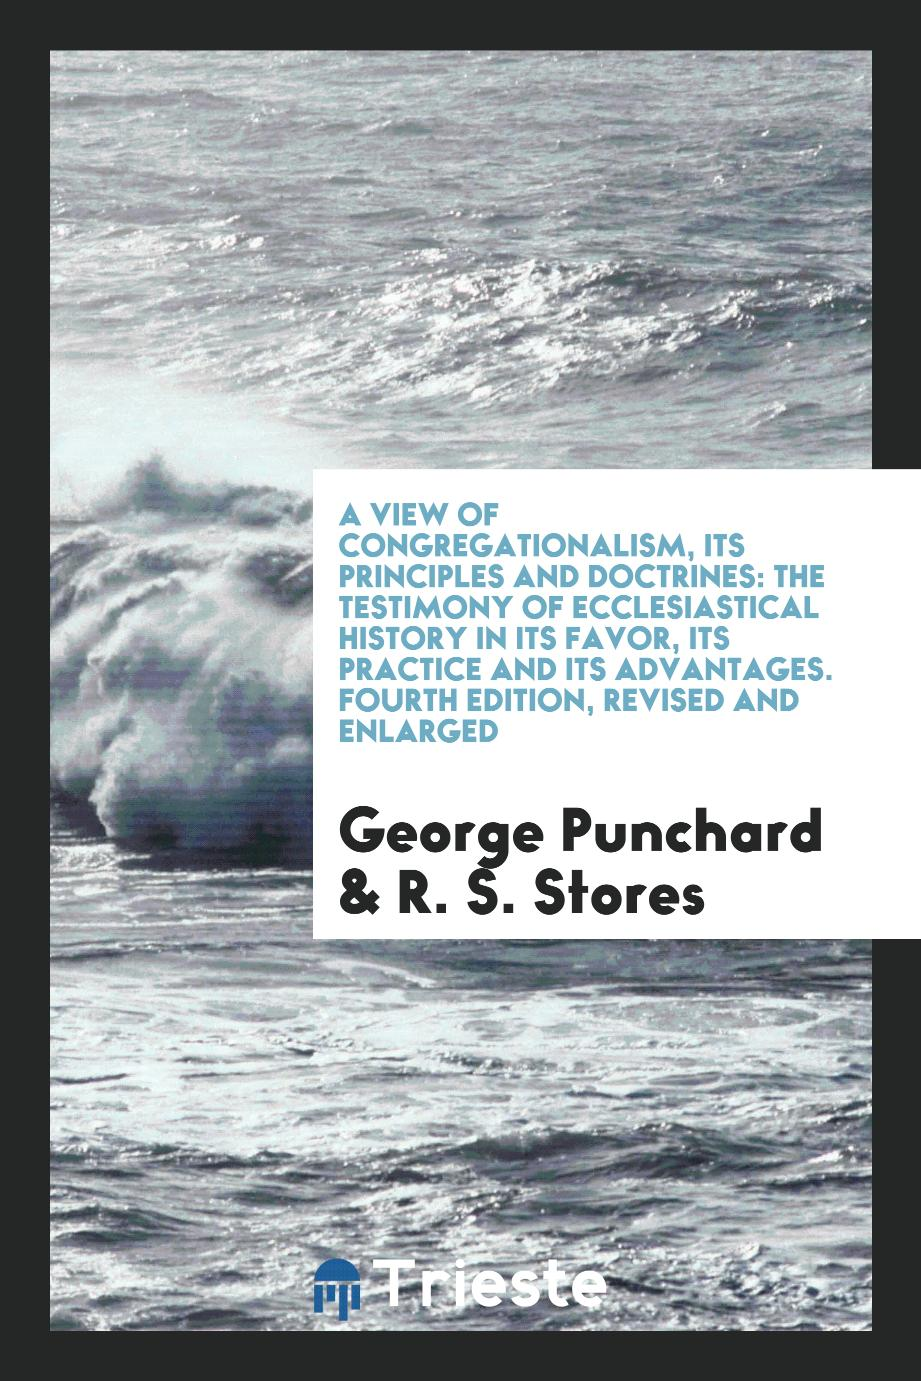 George Punchard, R. S. Stores - A View of Congregationalism, Its Principles and Doctrines: The Testimony of Ecclesiastical History in Its Favor, Its Practice and Its Advantages. Fourth Edition, Revised and Enlarged